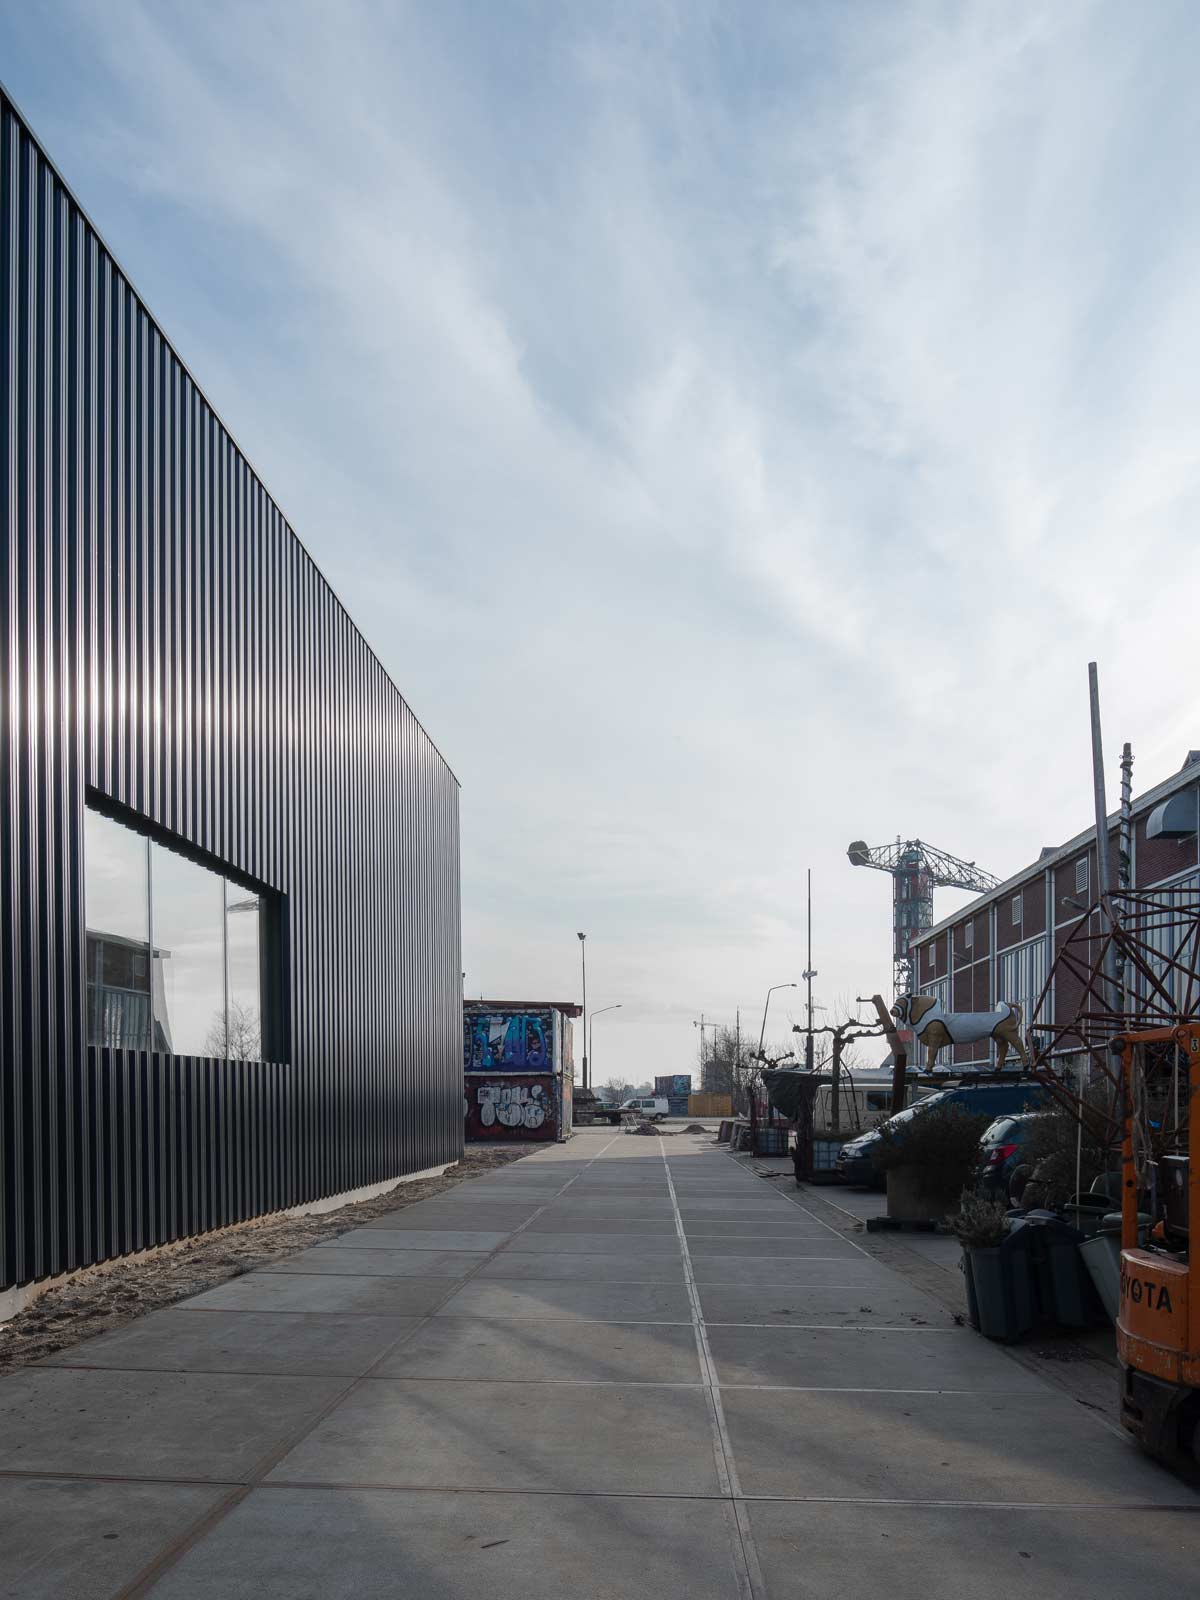 exterior photo showing reflections in rectangular window in currogated steel cladding